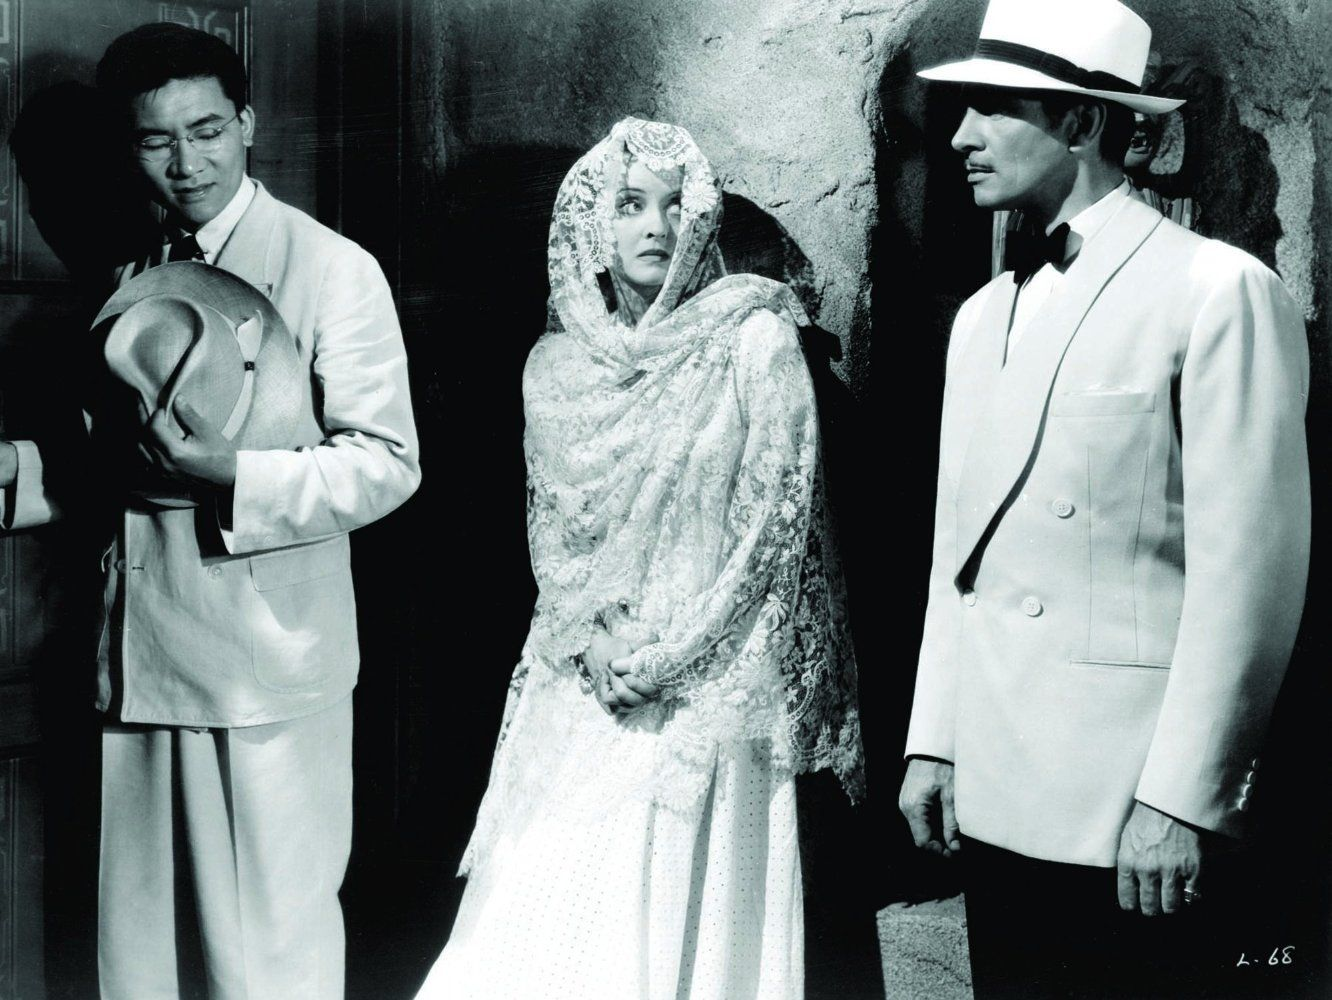 Victor Sen Yung, Bette Davis, and James Stephenson in a production still for The Letter (1940).